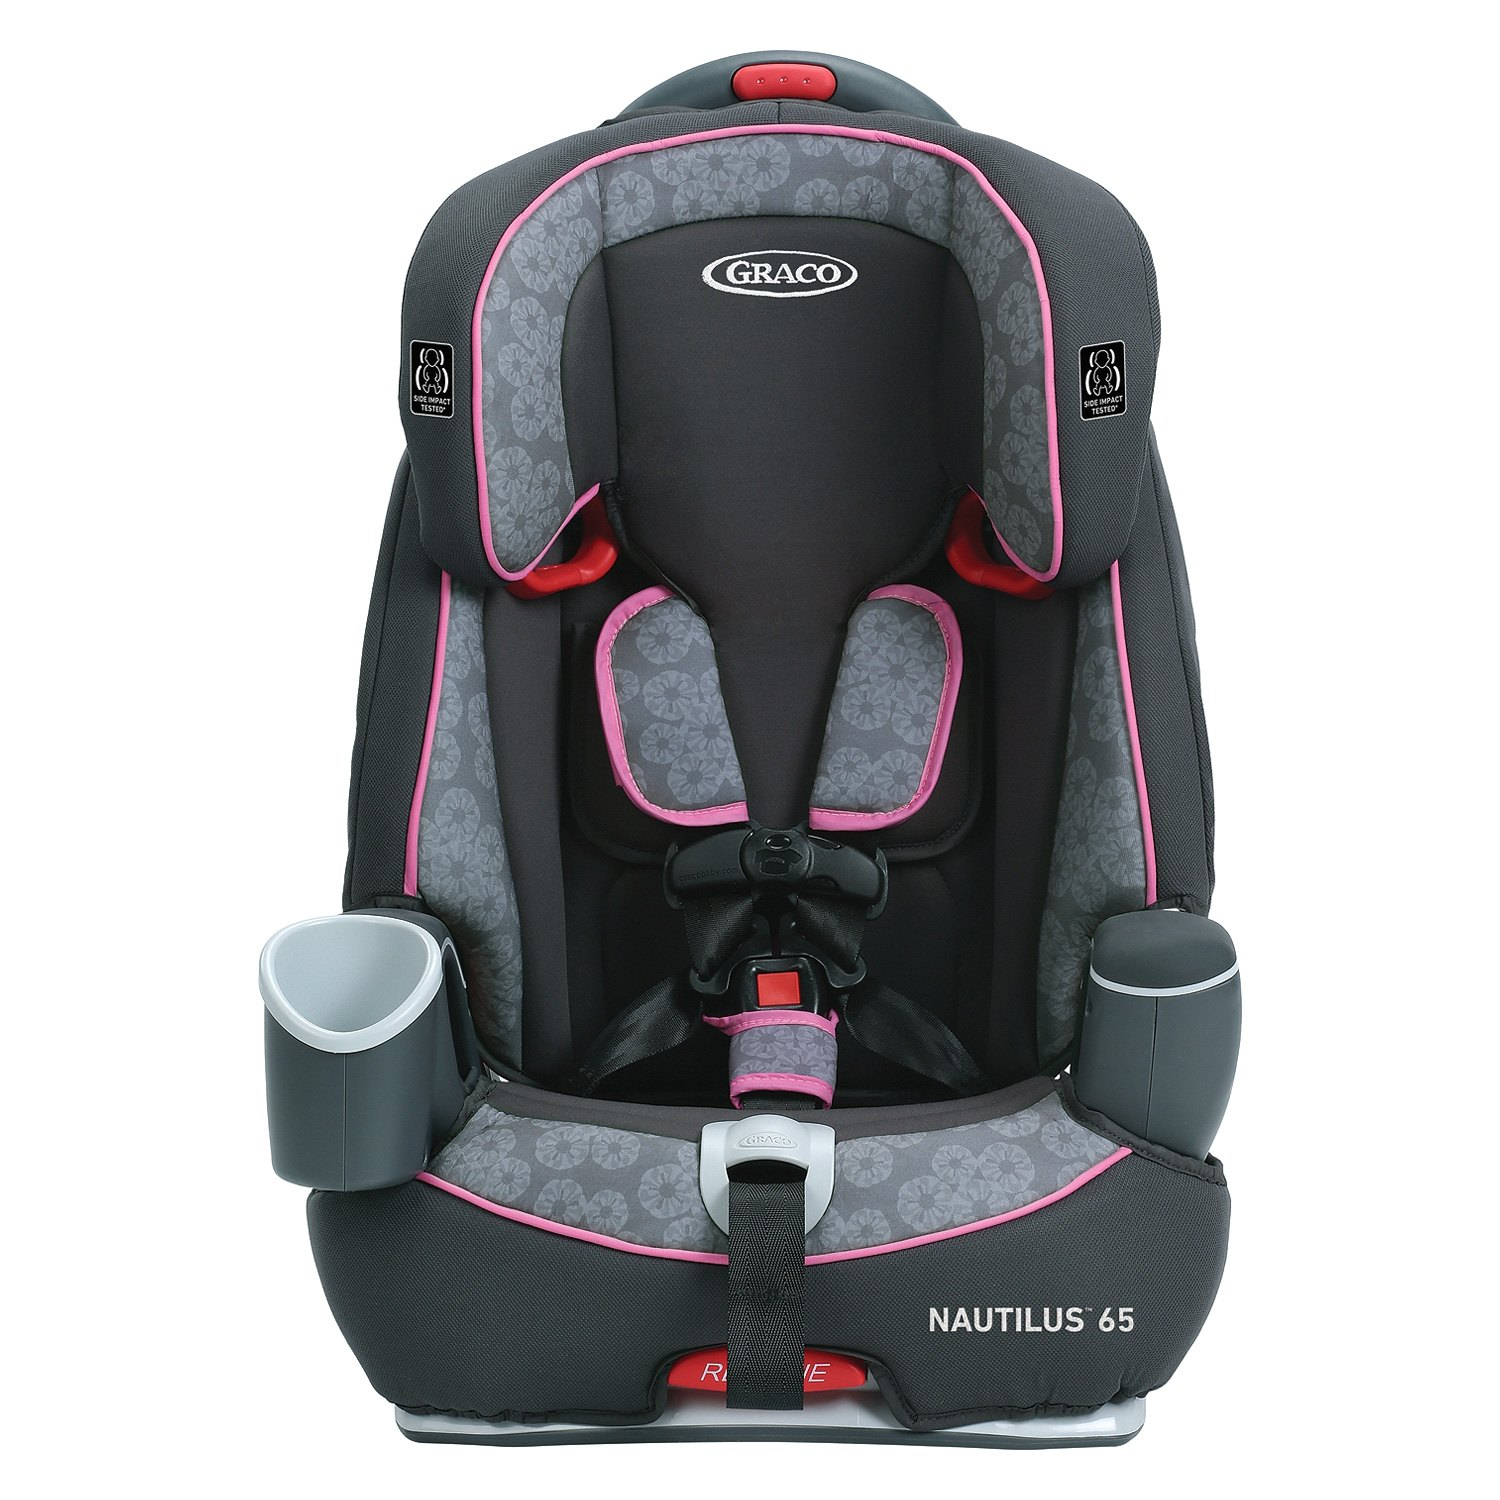 graco nautilus 3 in 1 car seat booster instructions. Black Bedroom Furniture Sets. Home Design Ideas